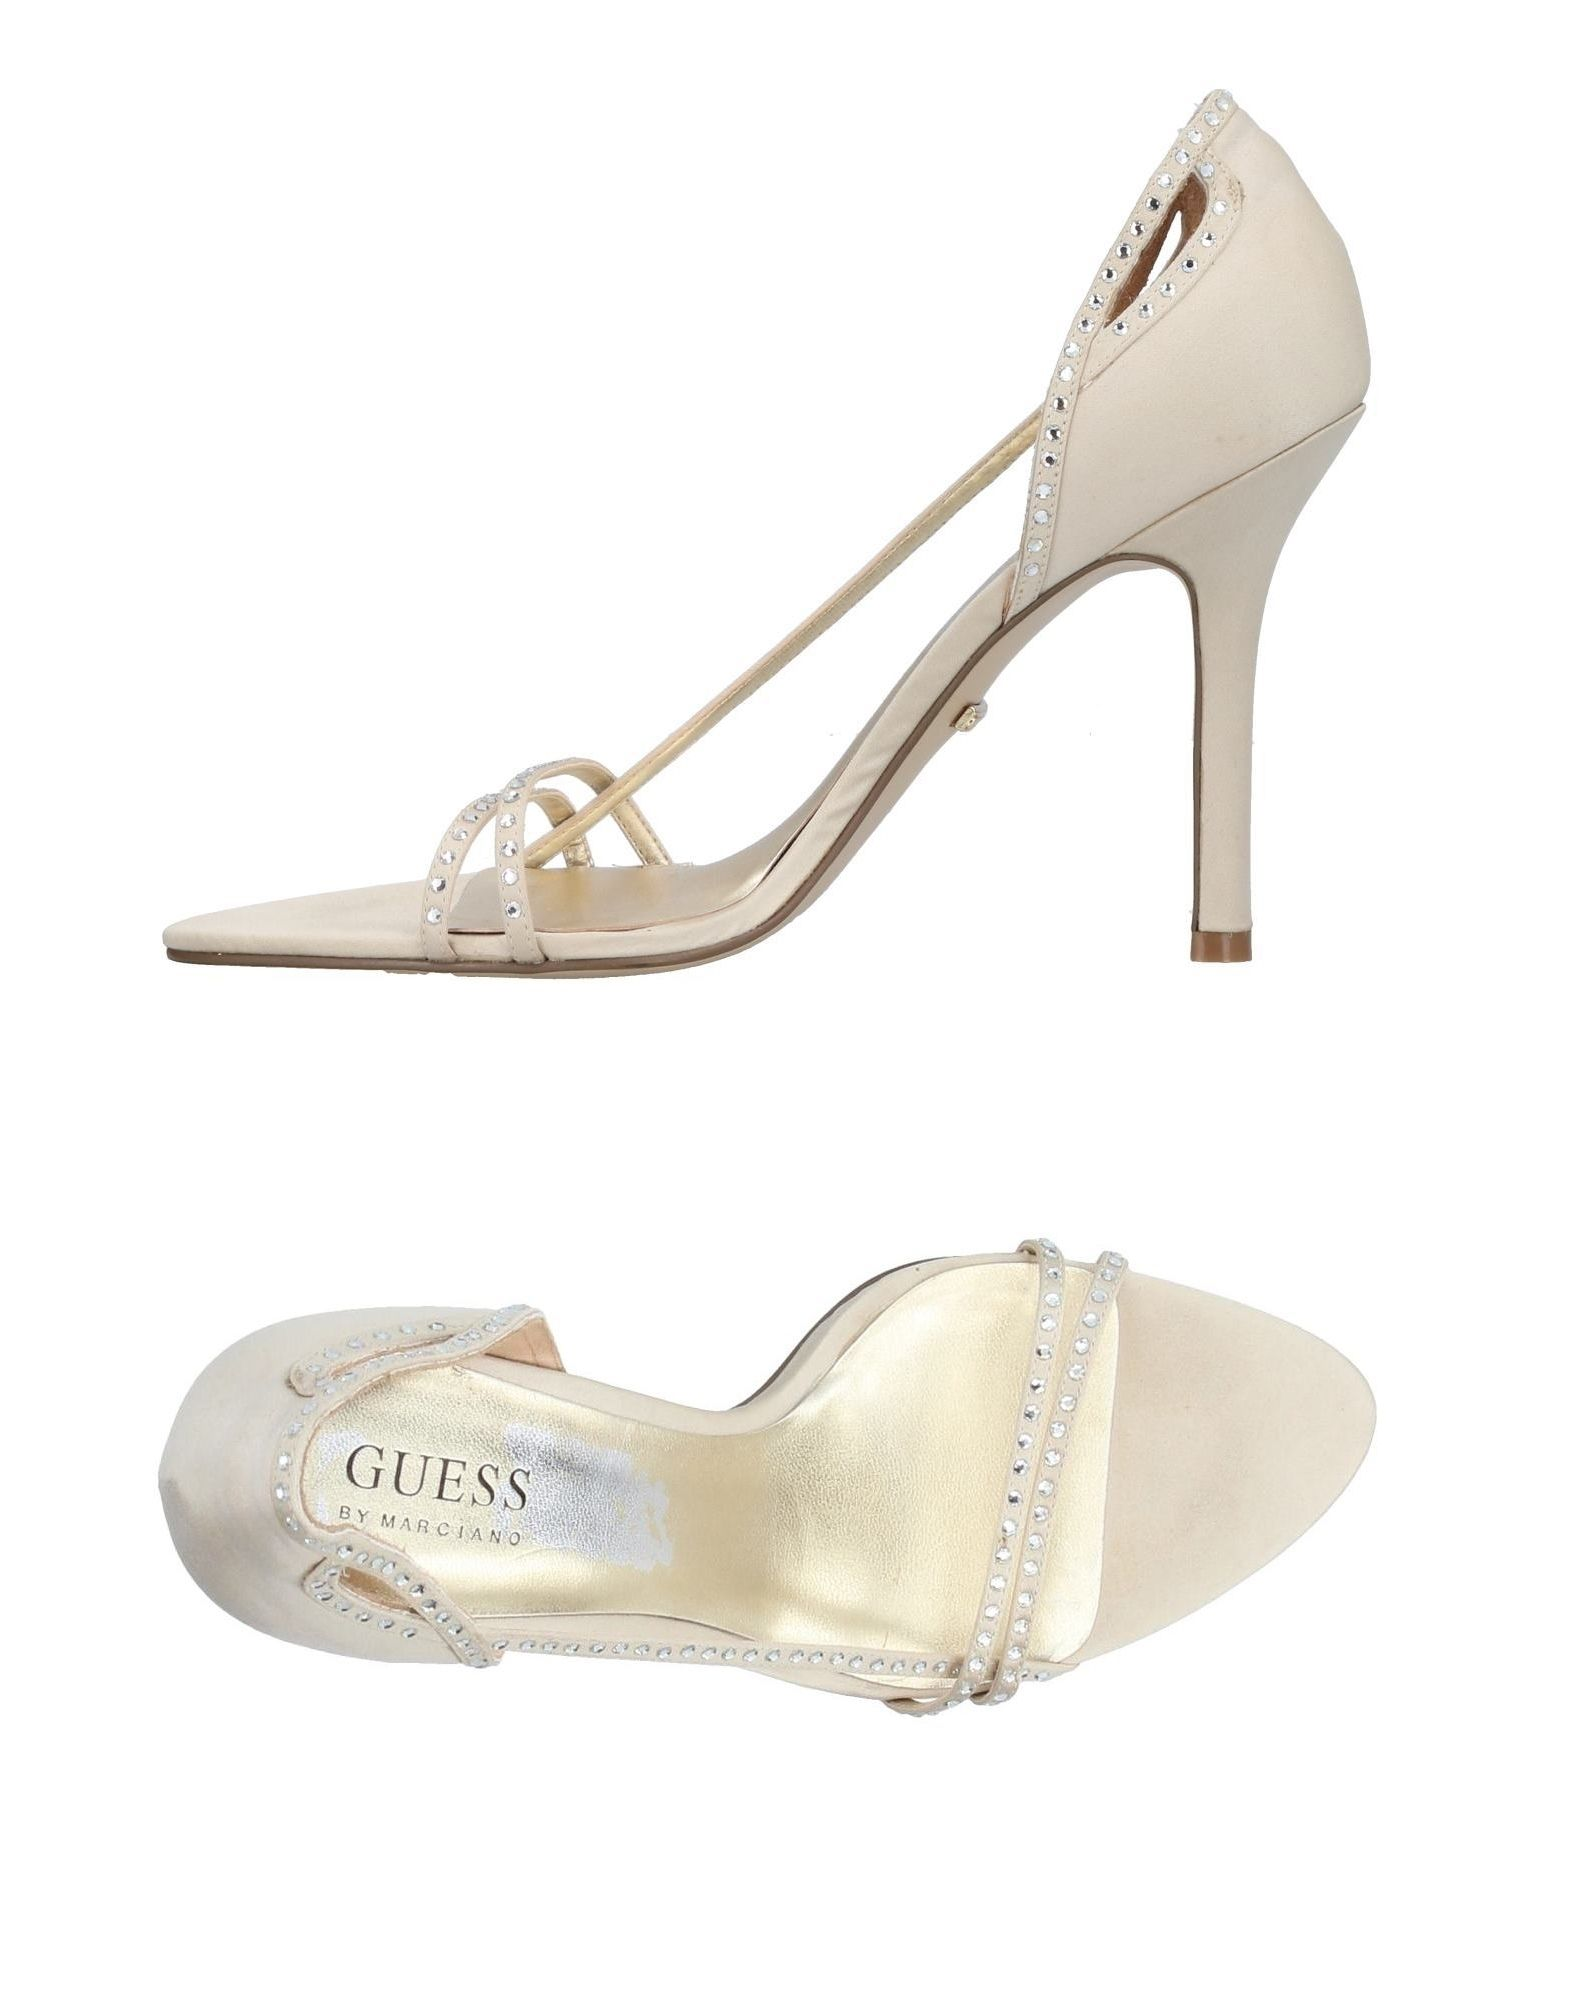 09a4a5c4 Guess By Marciano Mujer - Sandalias Tacones Altos Guess By Marciano - YOOX